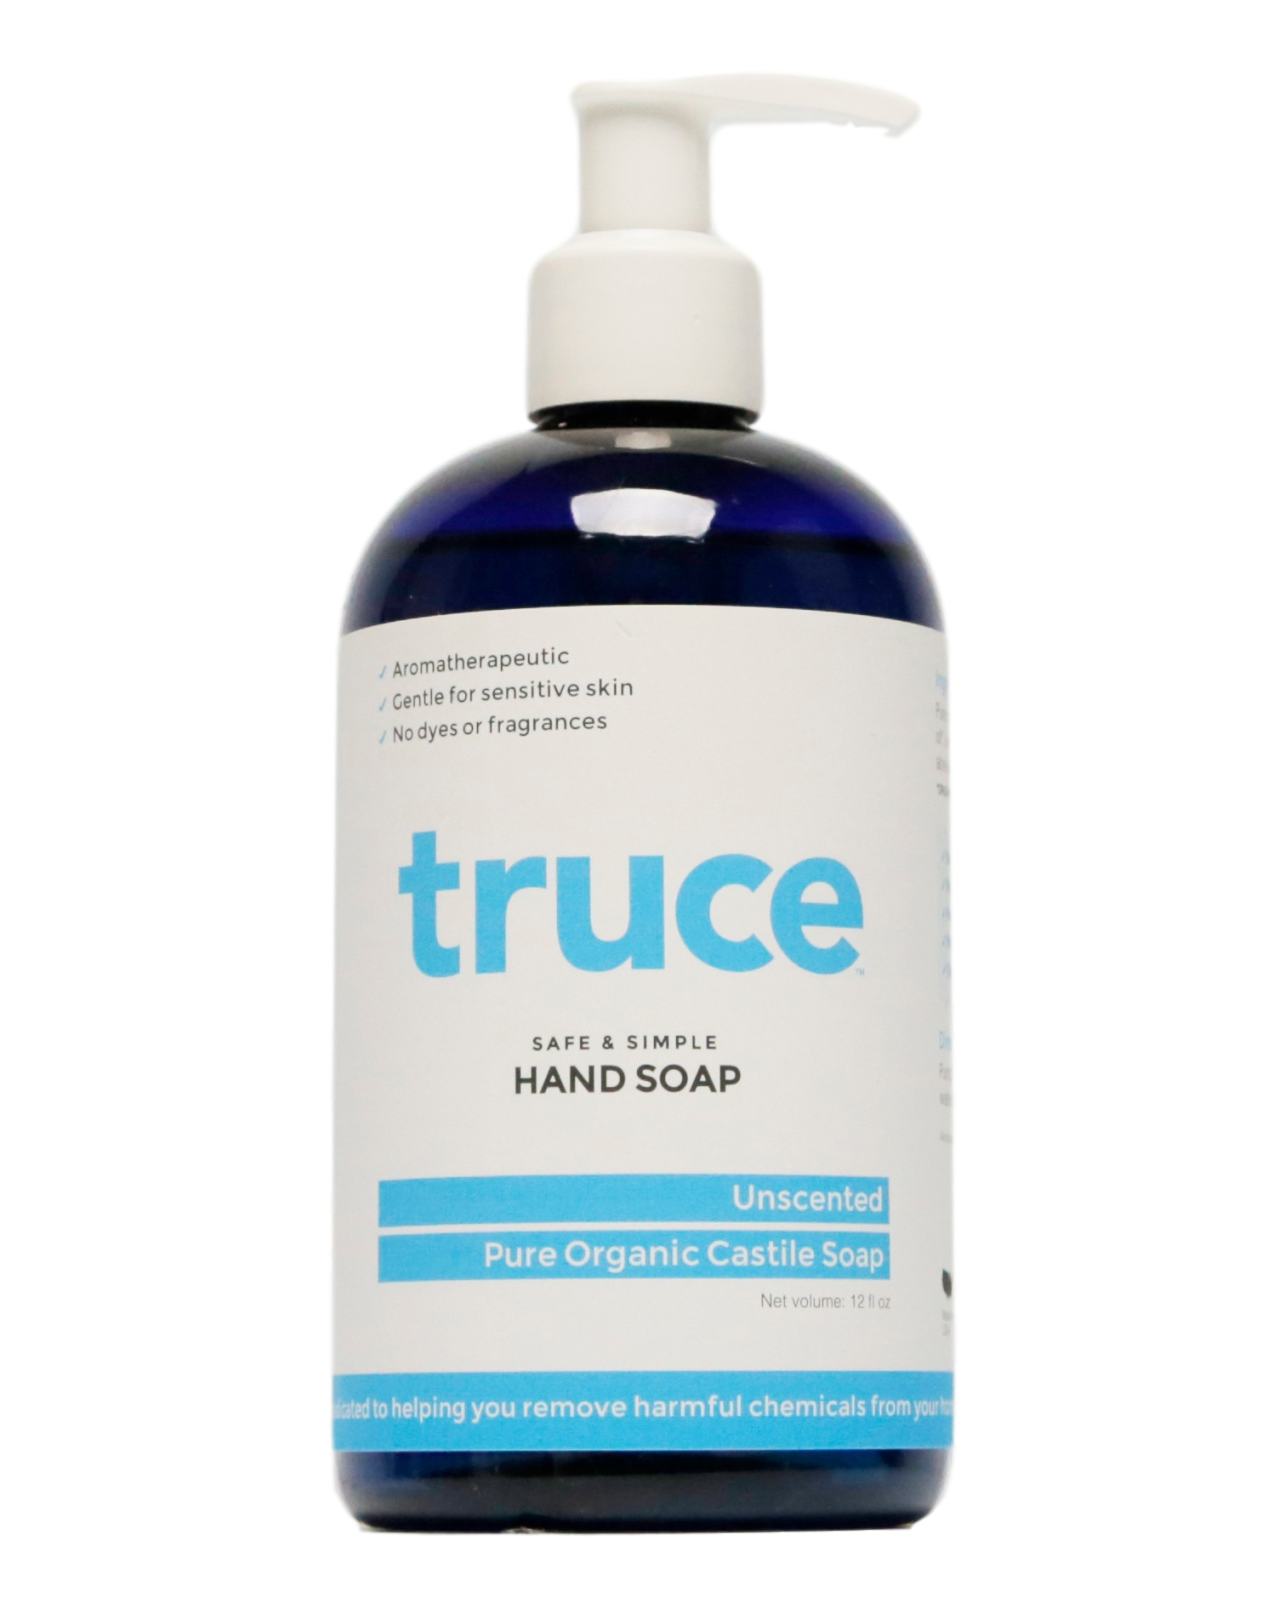 TRUCE Unscented Organic Castille Hand Soap